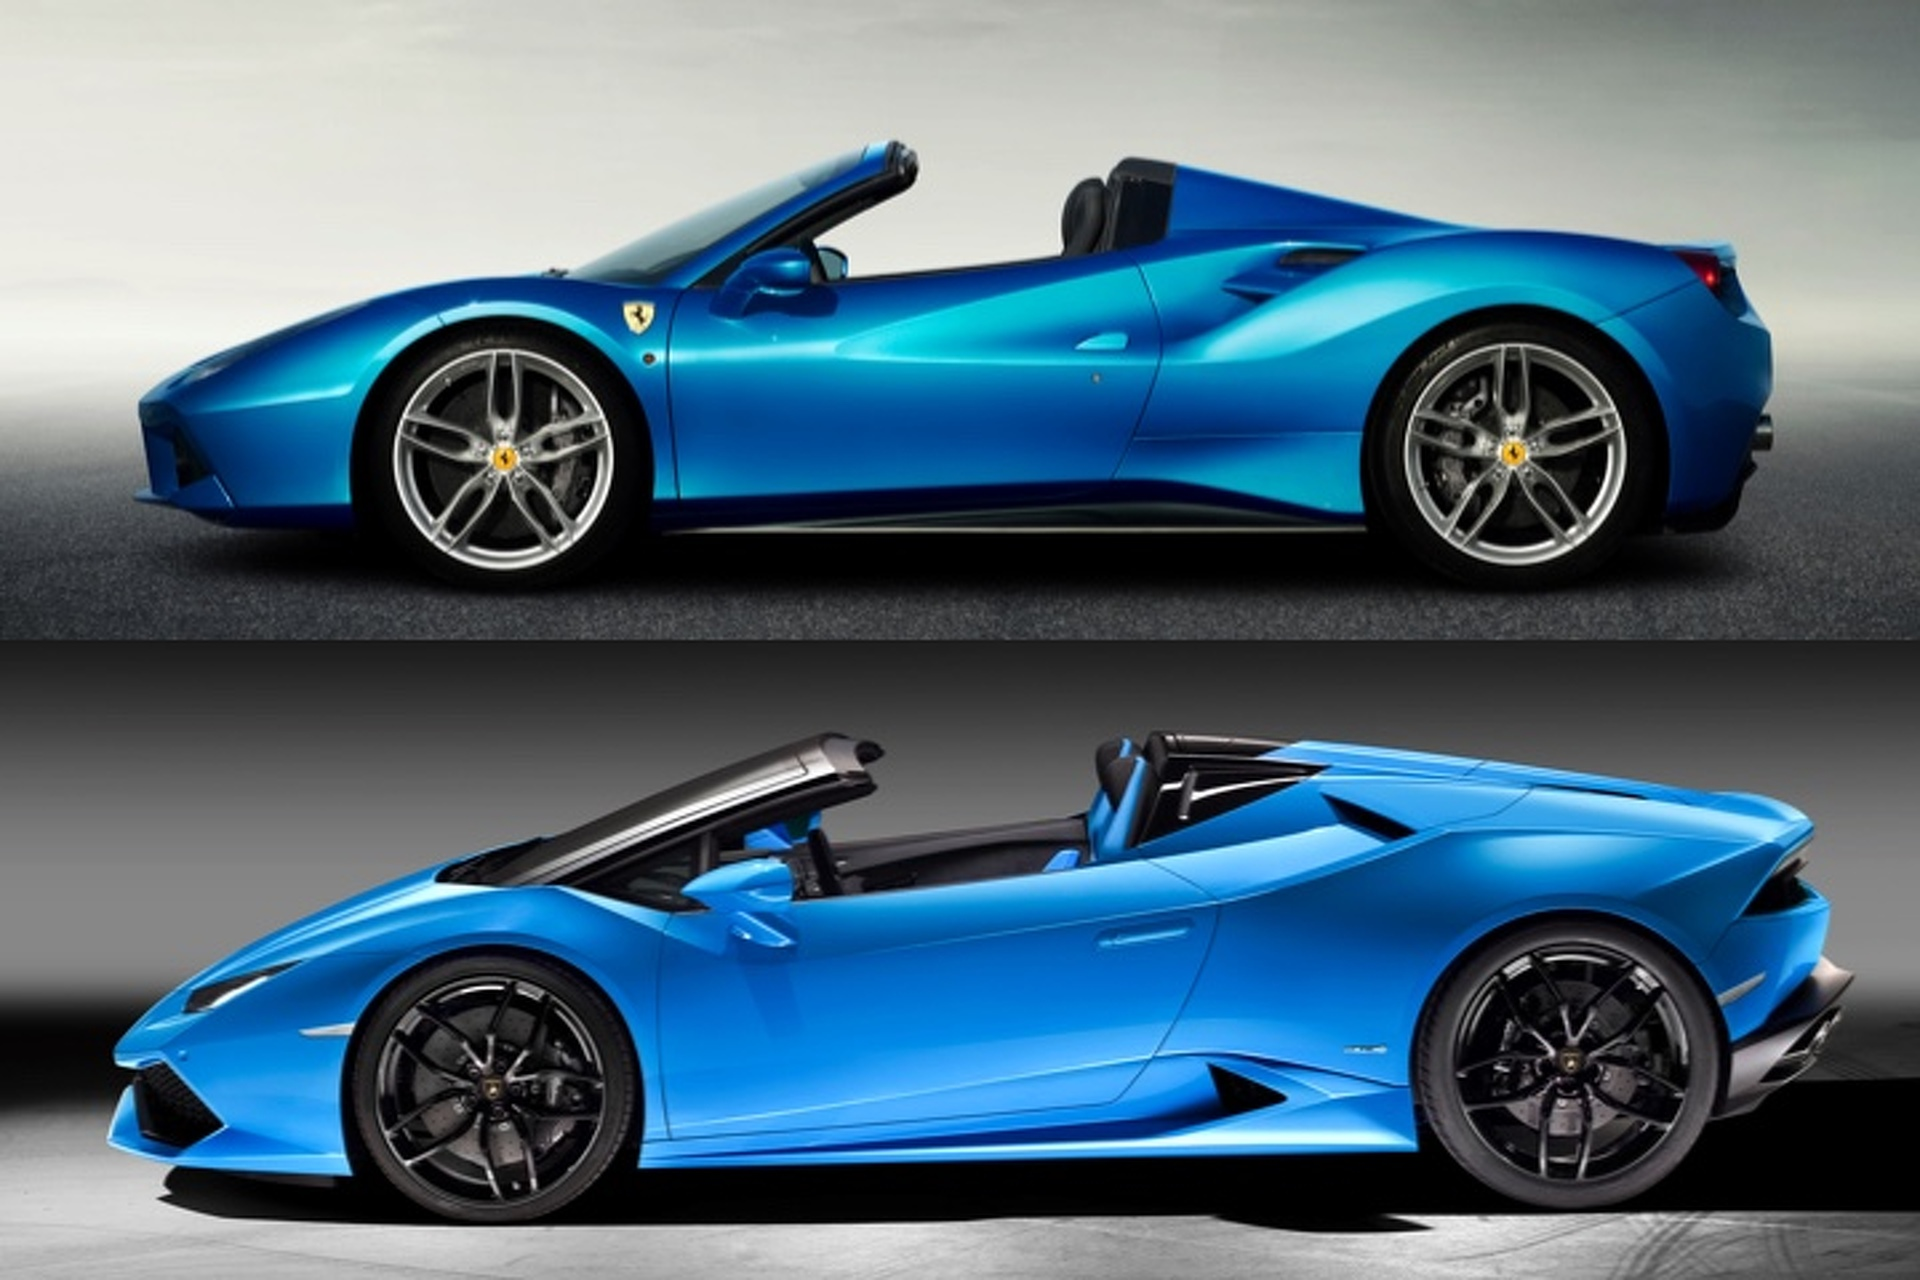 lamborghini huracan spyder vs ferrari 488 how do they. Black Bedroom Furniture Sets. Home Design Ideas